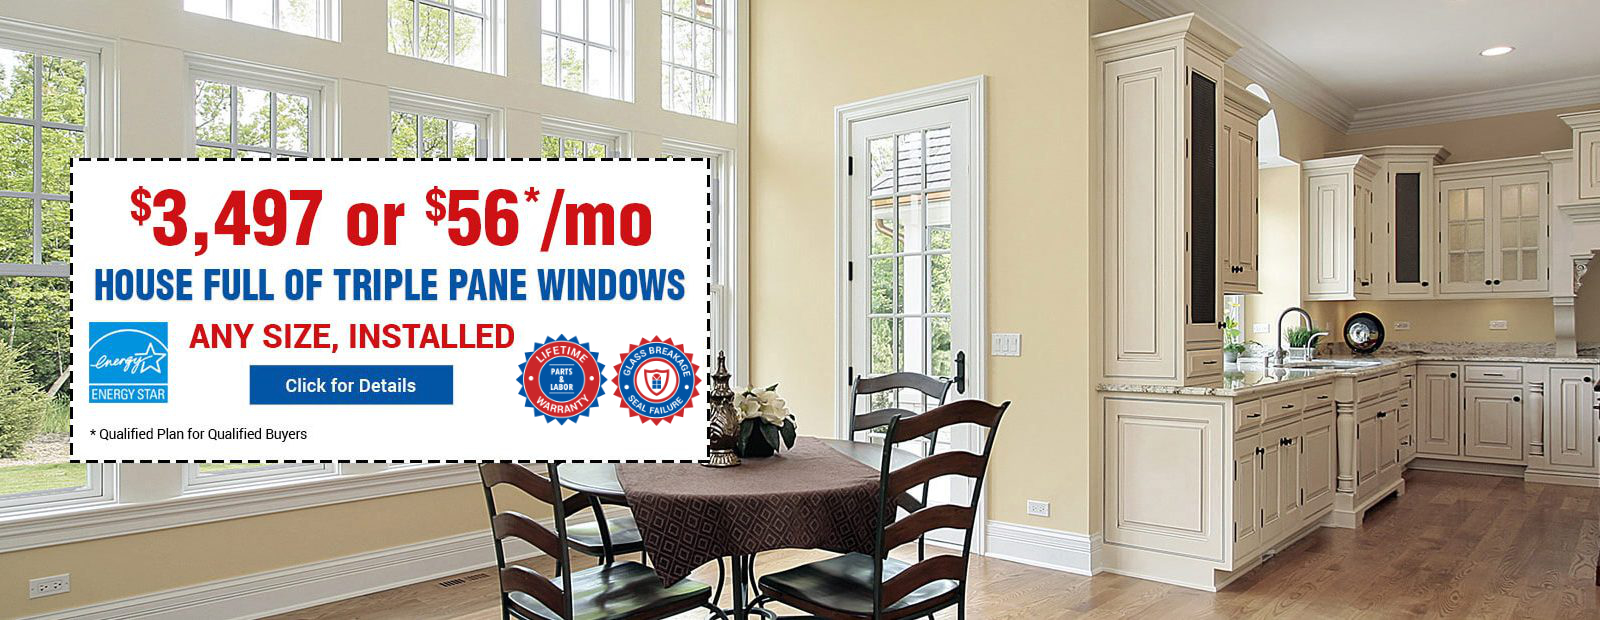 Replacement Windows at $198